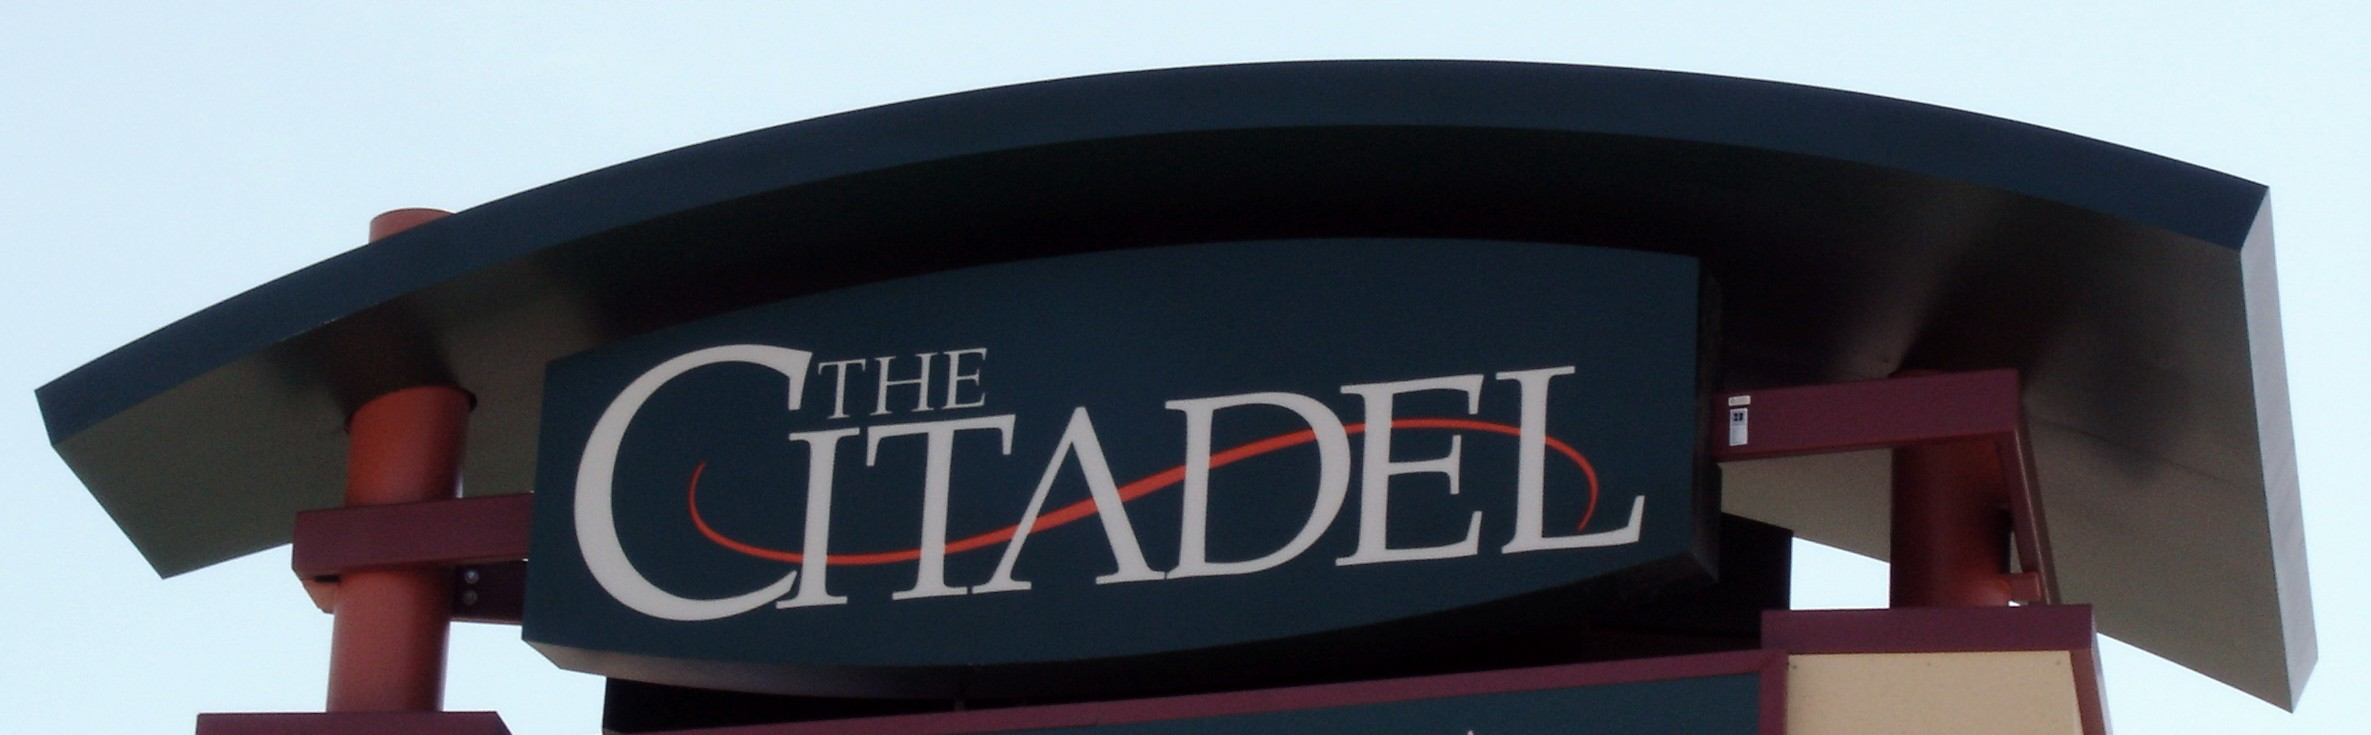 The Citadel Mall Sold